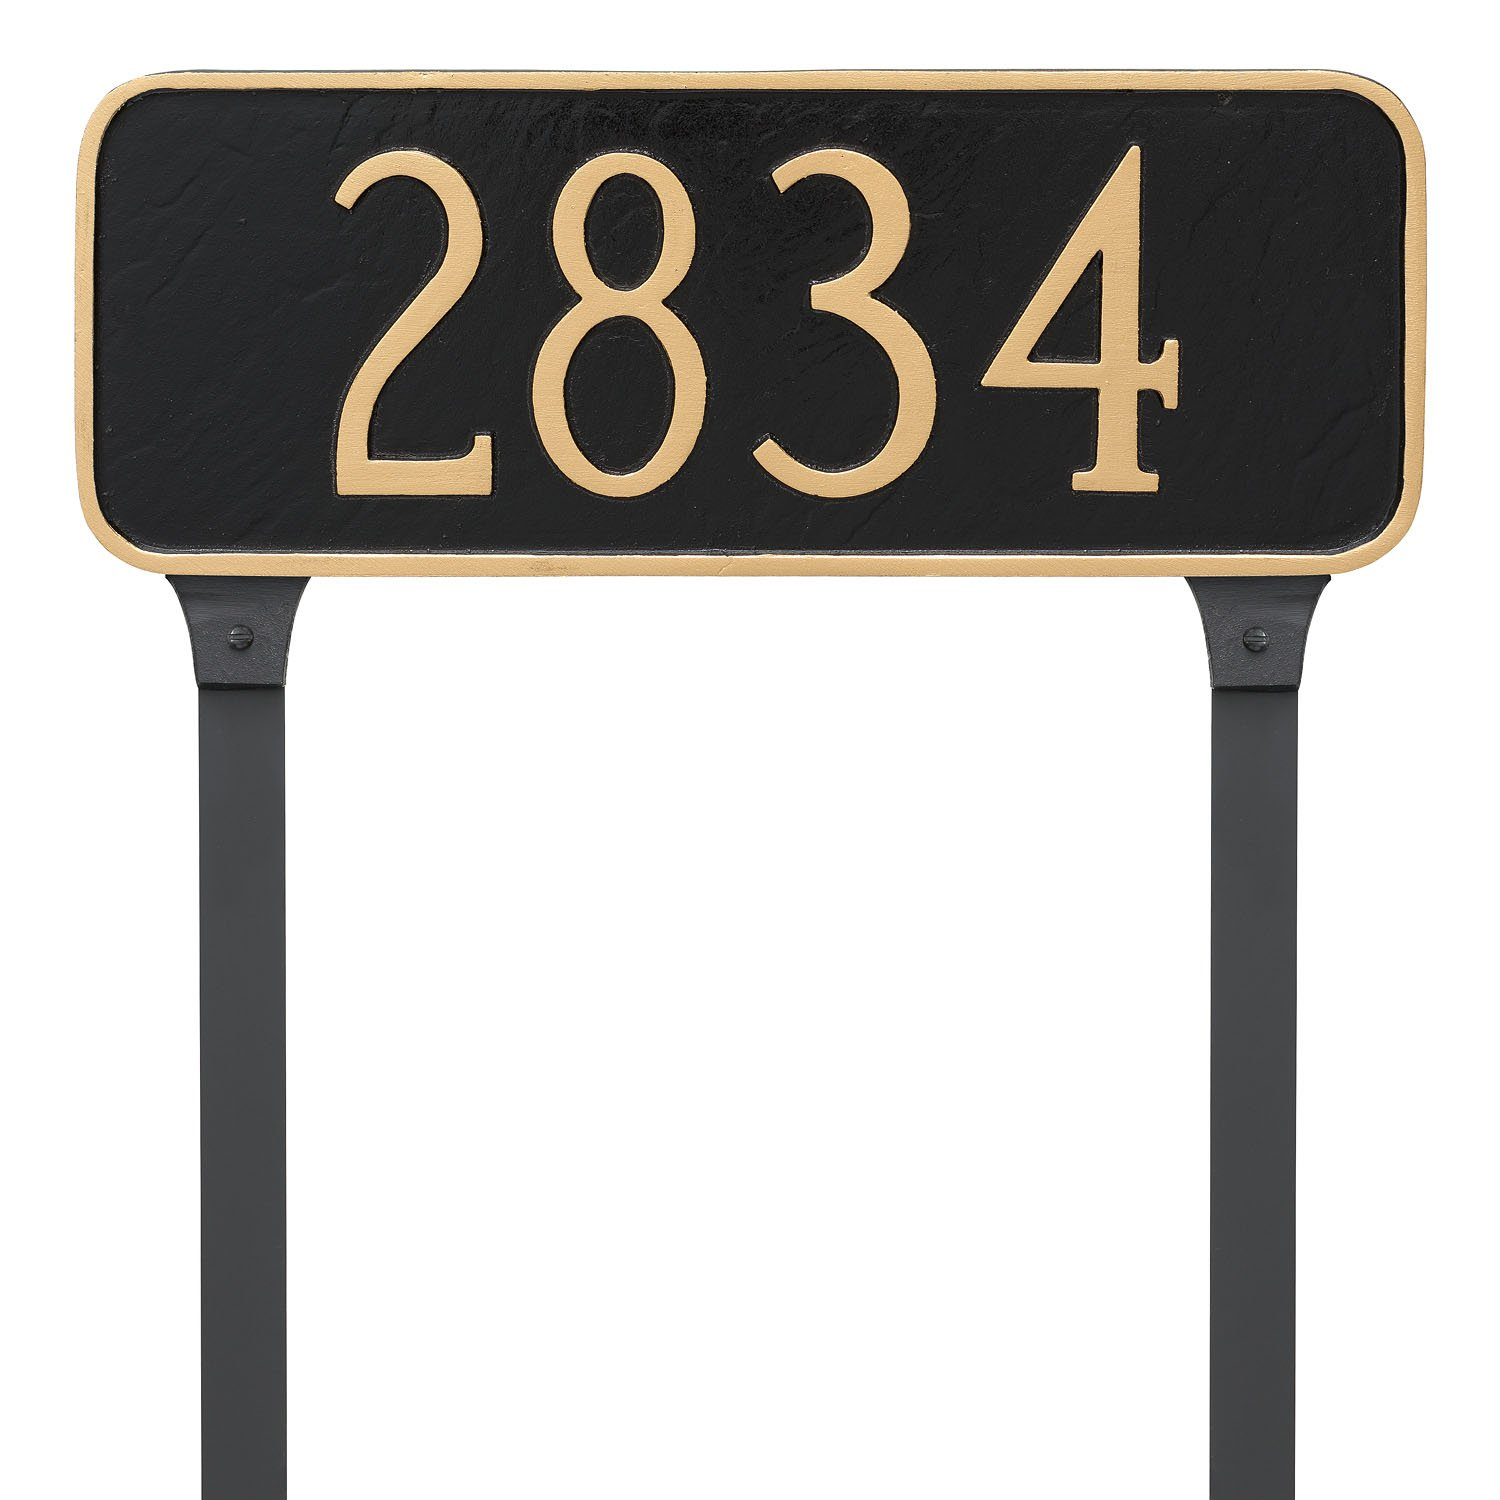 Montague Metal Rectangle Address Plaque Sign with Stakes, 6' x 15.75', Antique Copper